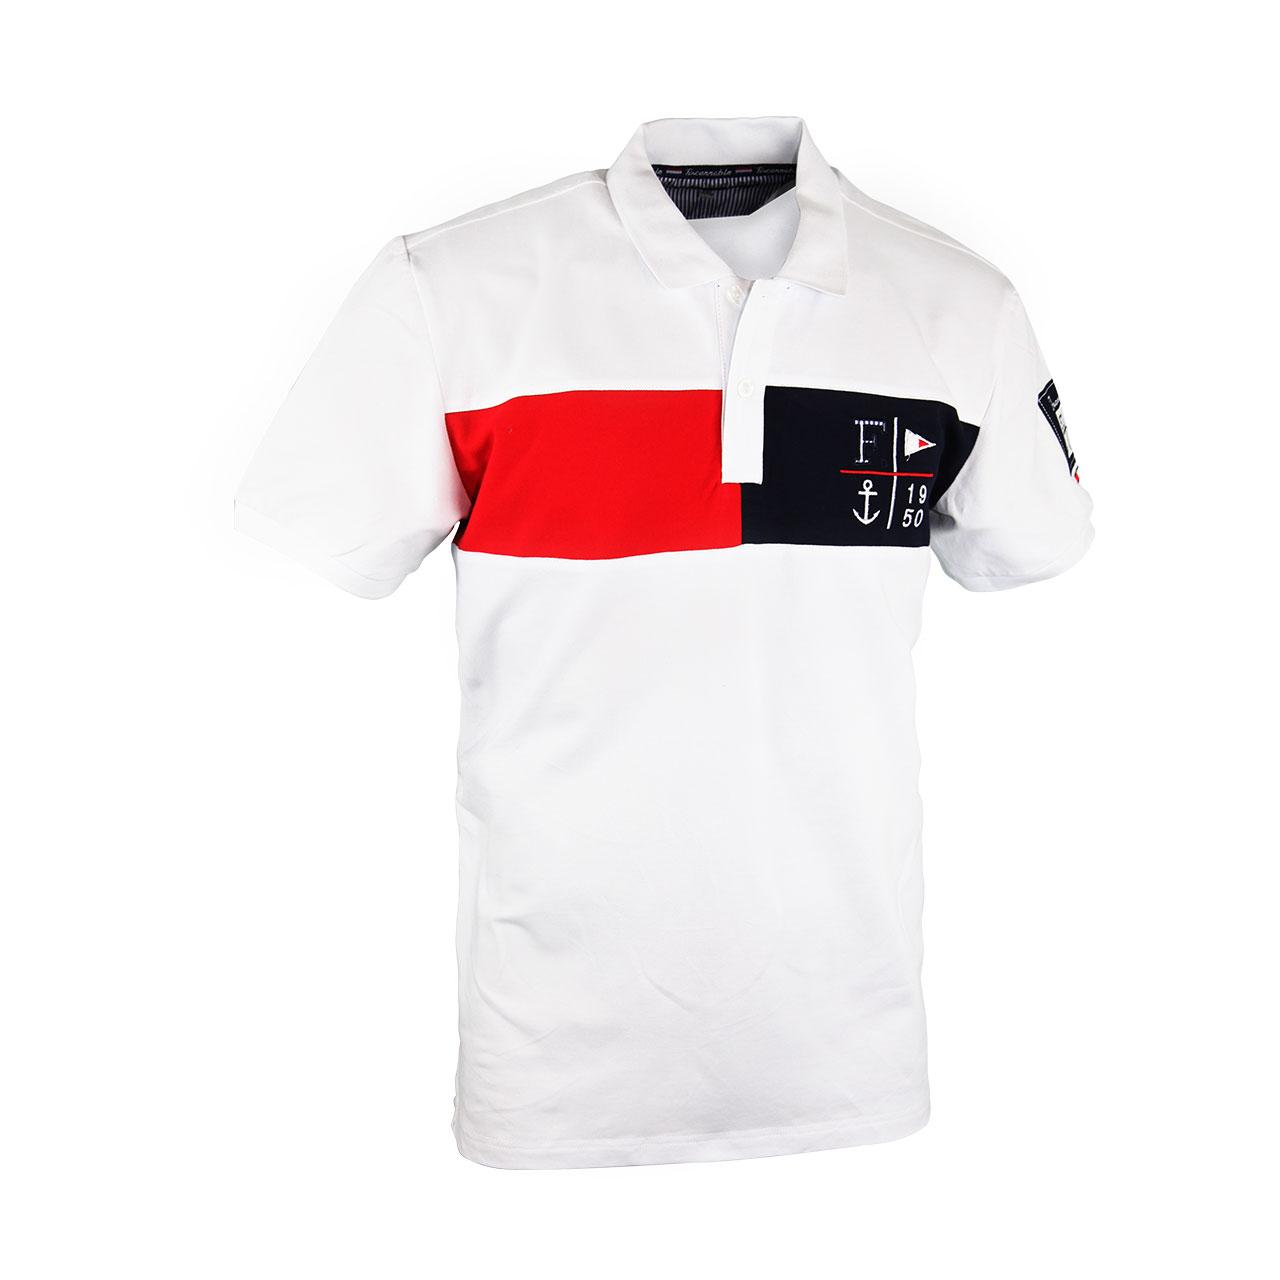 Men's White Solid Polo Collar T-shirt With Designer Patch